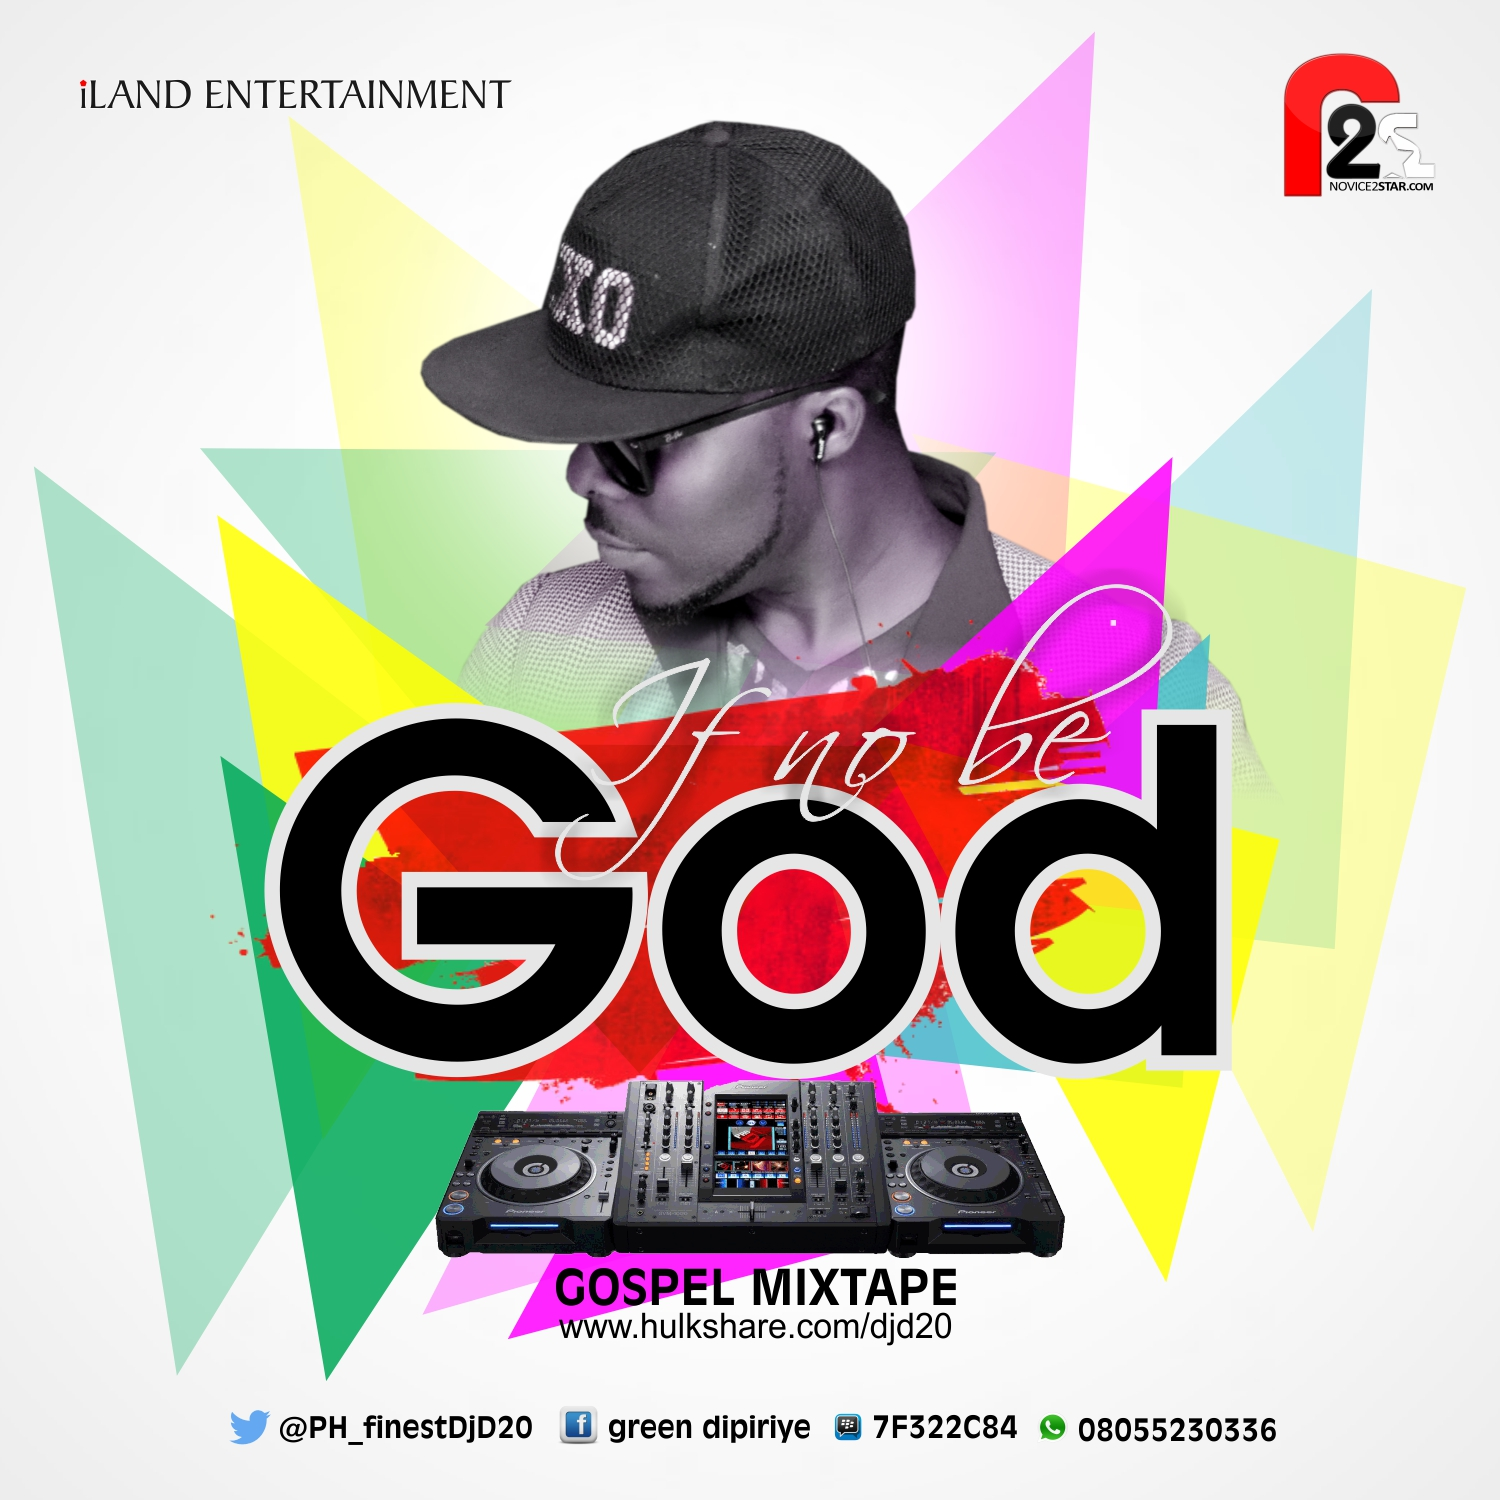 GOSPEL MIXTAPE: DJ D20 - IF NO BE GOD - Novice2STAR